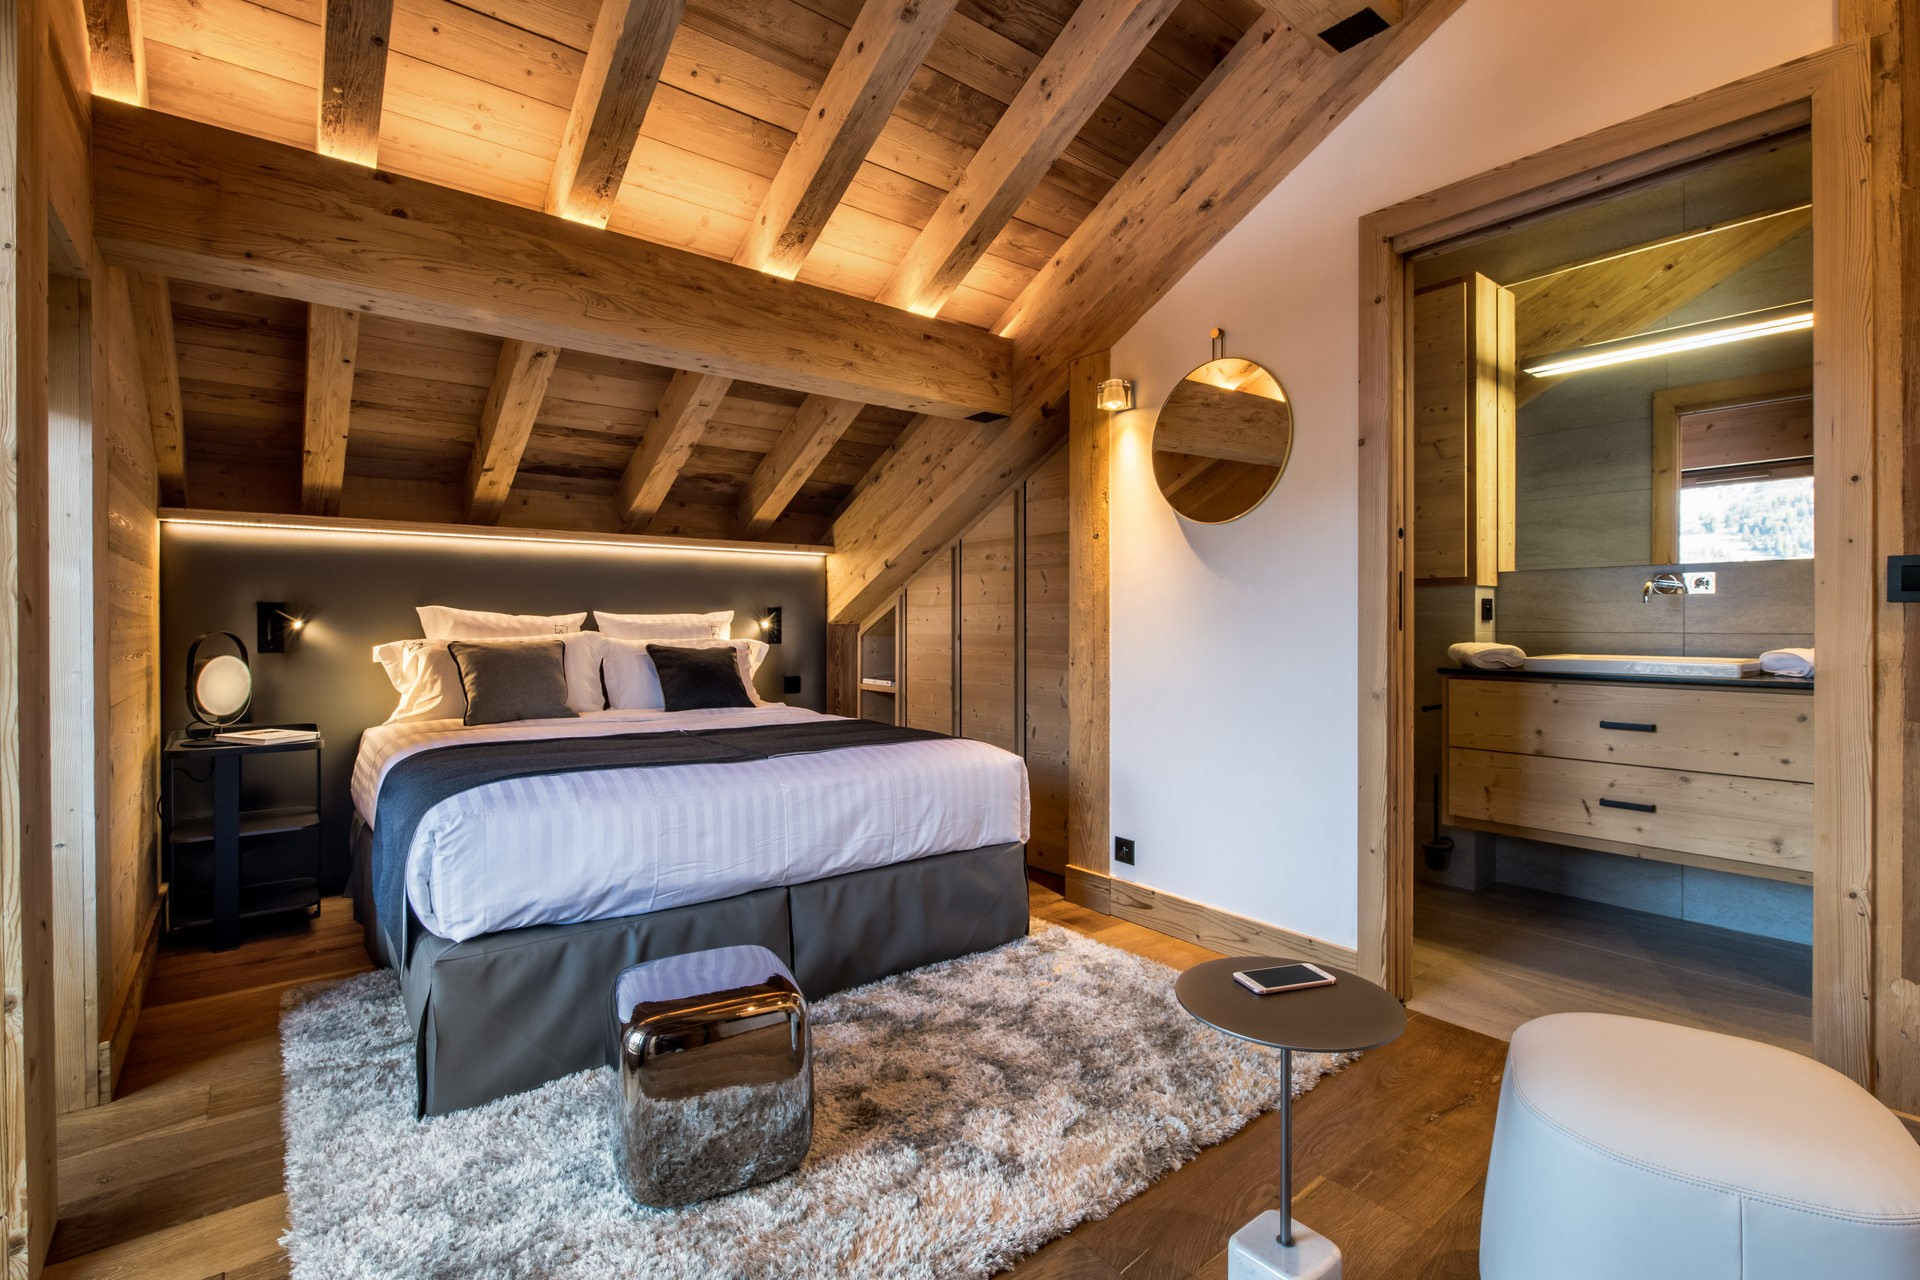 Méribel Location Chalet Luxe Nuolora Chambre